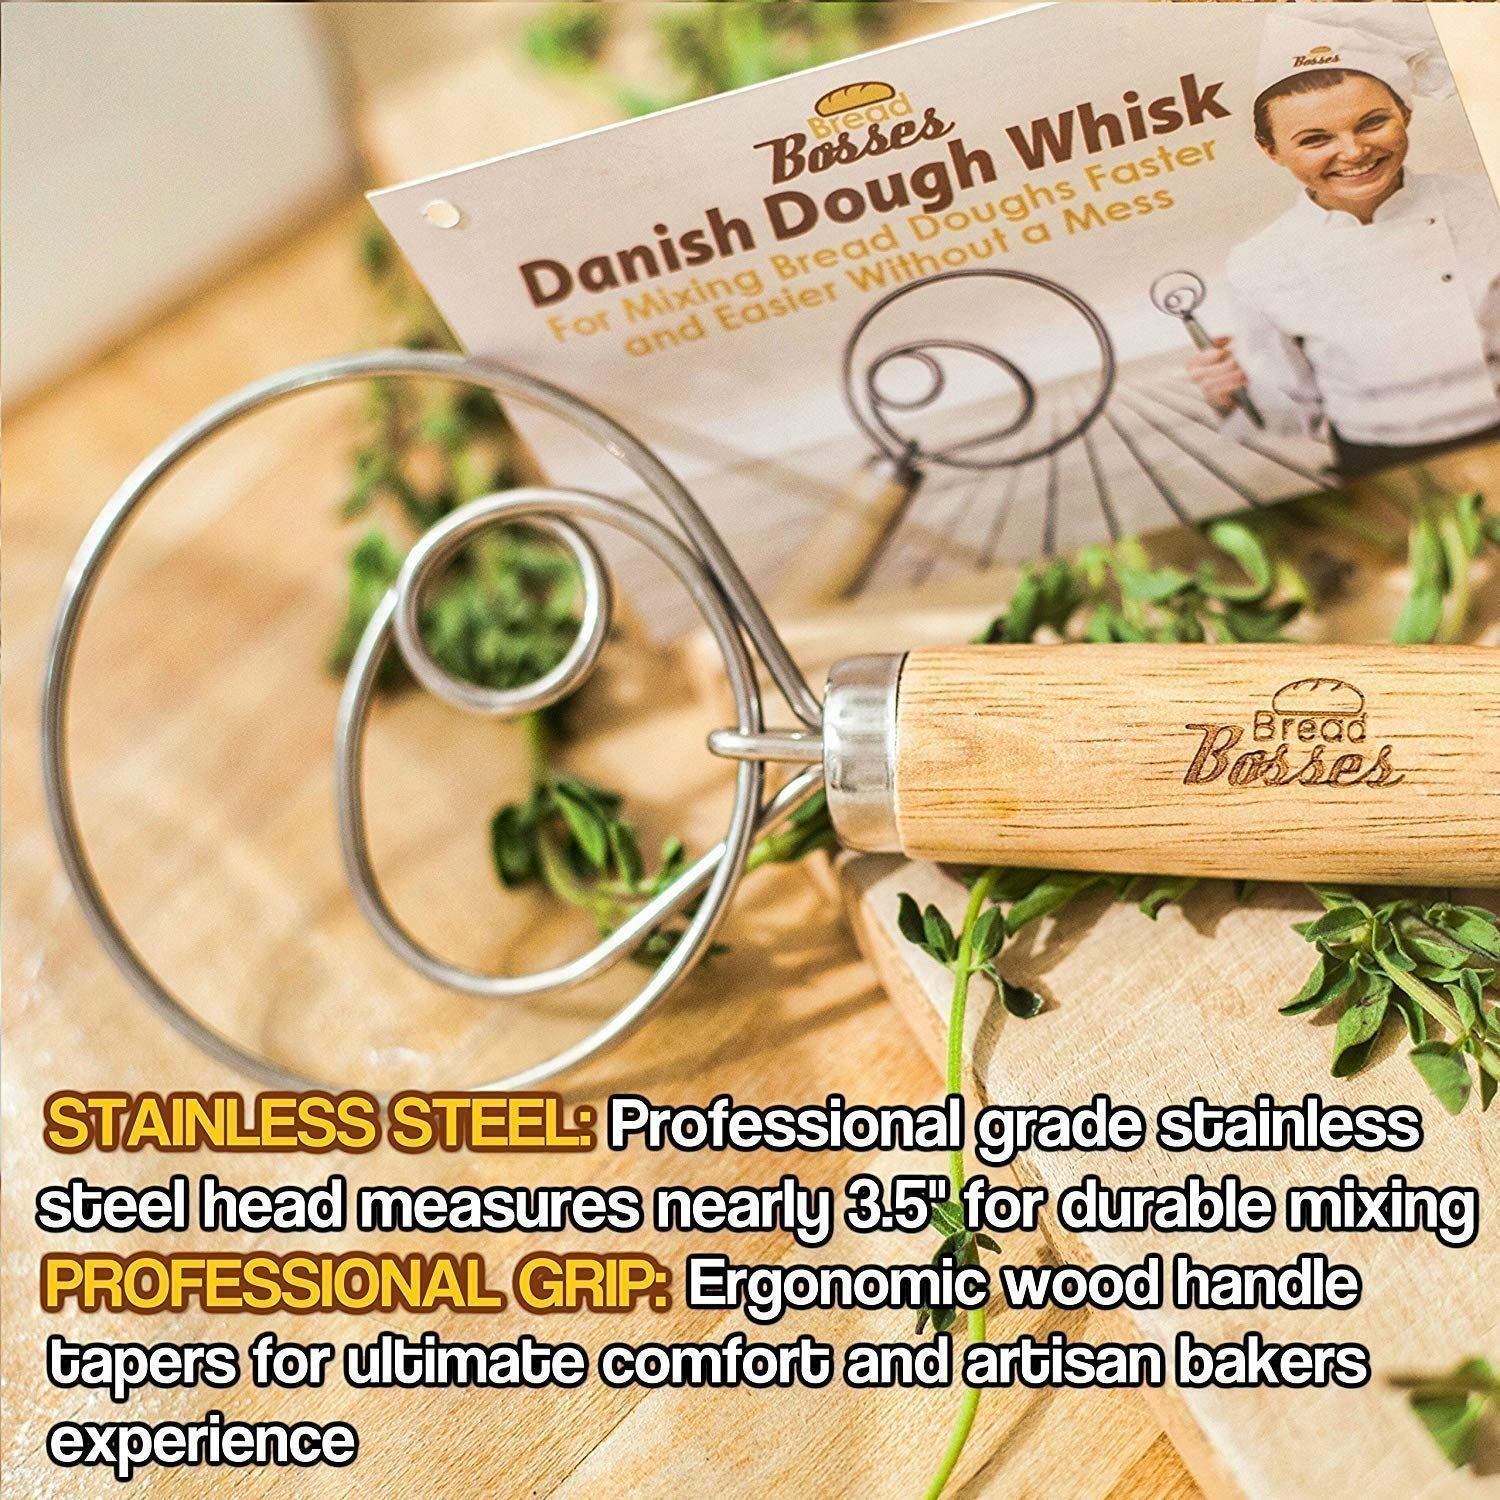 Danish Dough Whisk for Bread Making - Kitchen Grade Hand Mixer and Blender for Baking Cake, Dessert, Pizza, Pastry, Sourdough, Cooking - Stainless Steel Hook Wisk with Large Comfort Grip Wooden Handle by Bread Bosses (Image #9)